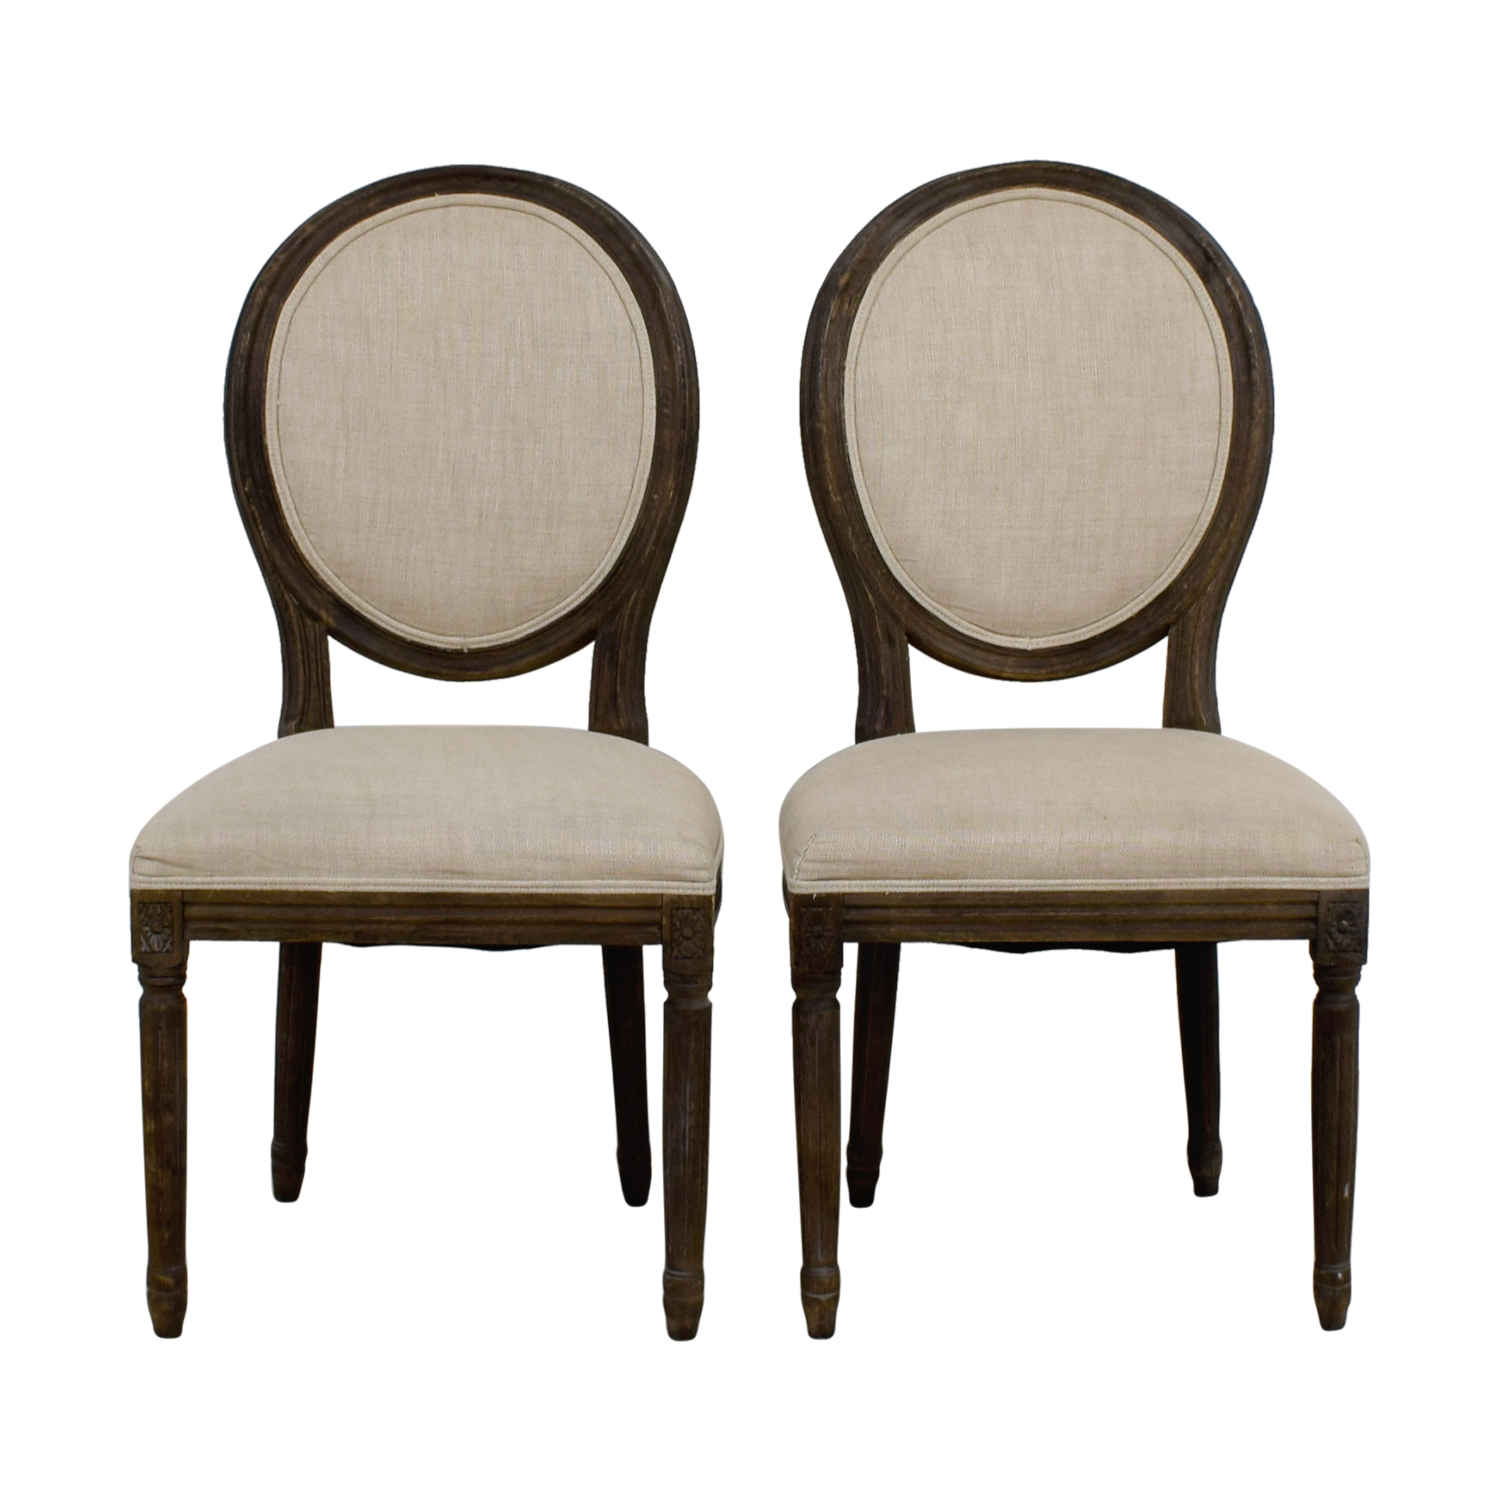 Restoration Hardware Dining Chairs 77 Off Restoration Hardware Restoration Hardware Beige Dining Chairs Chairs